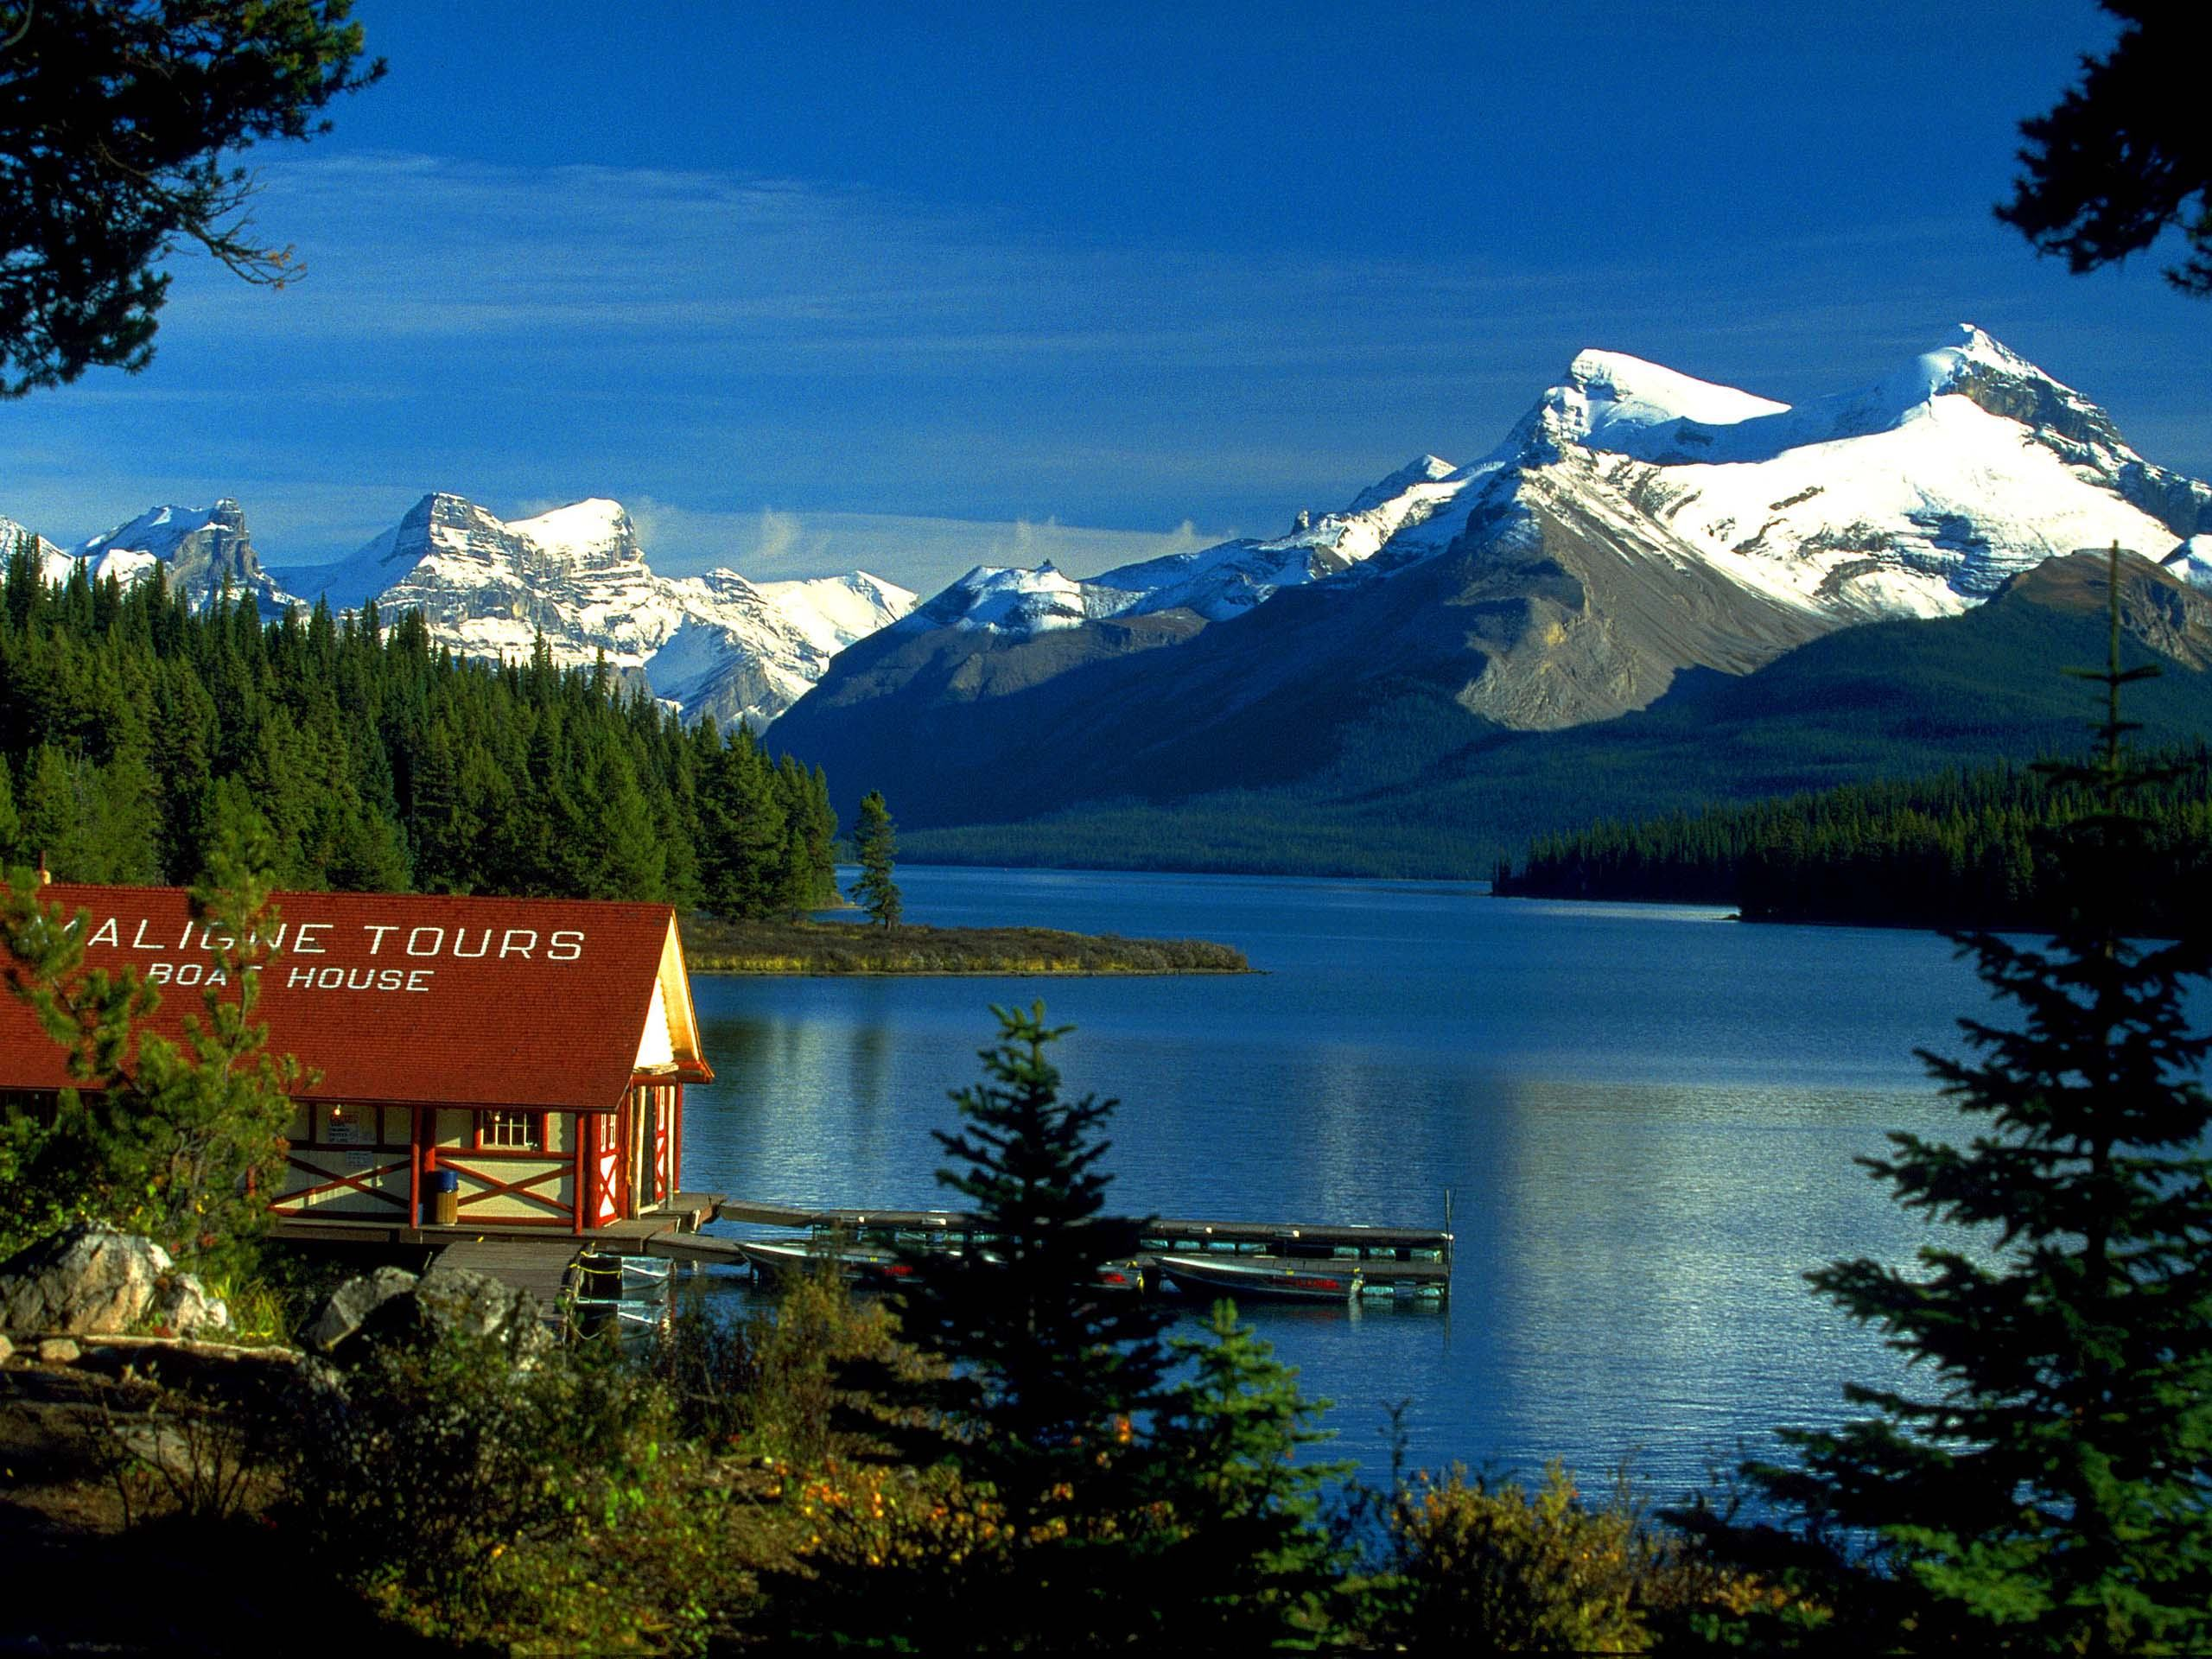 Wallpaper   Boat House Maligne Lake Jasper Alberta Canada wallpapers 2560x1920